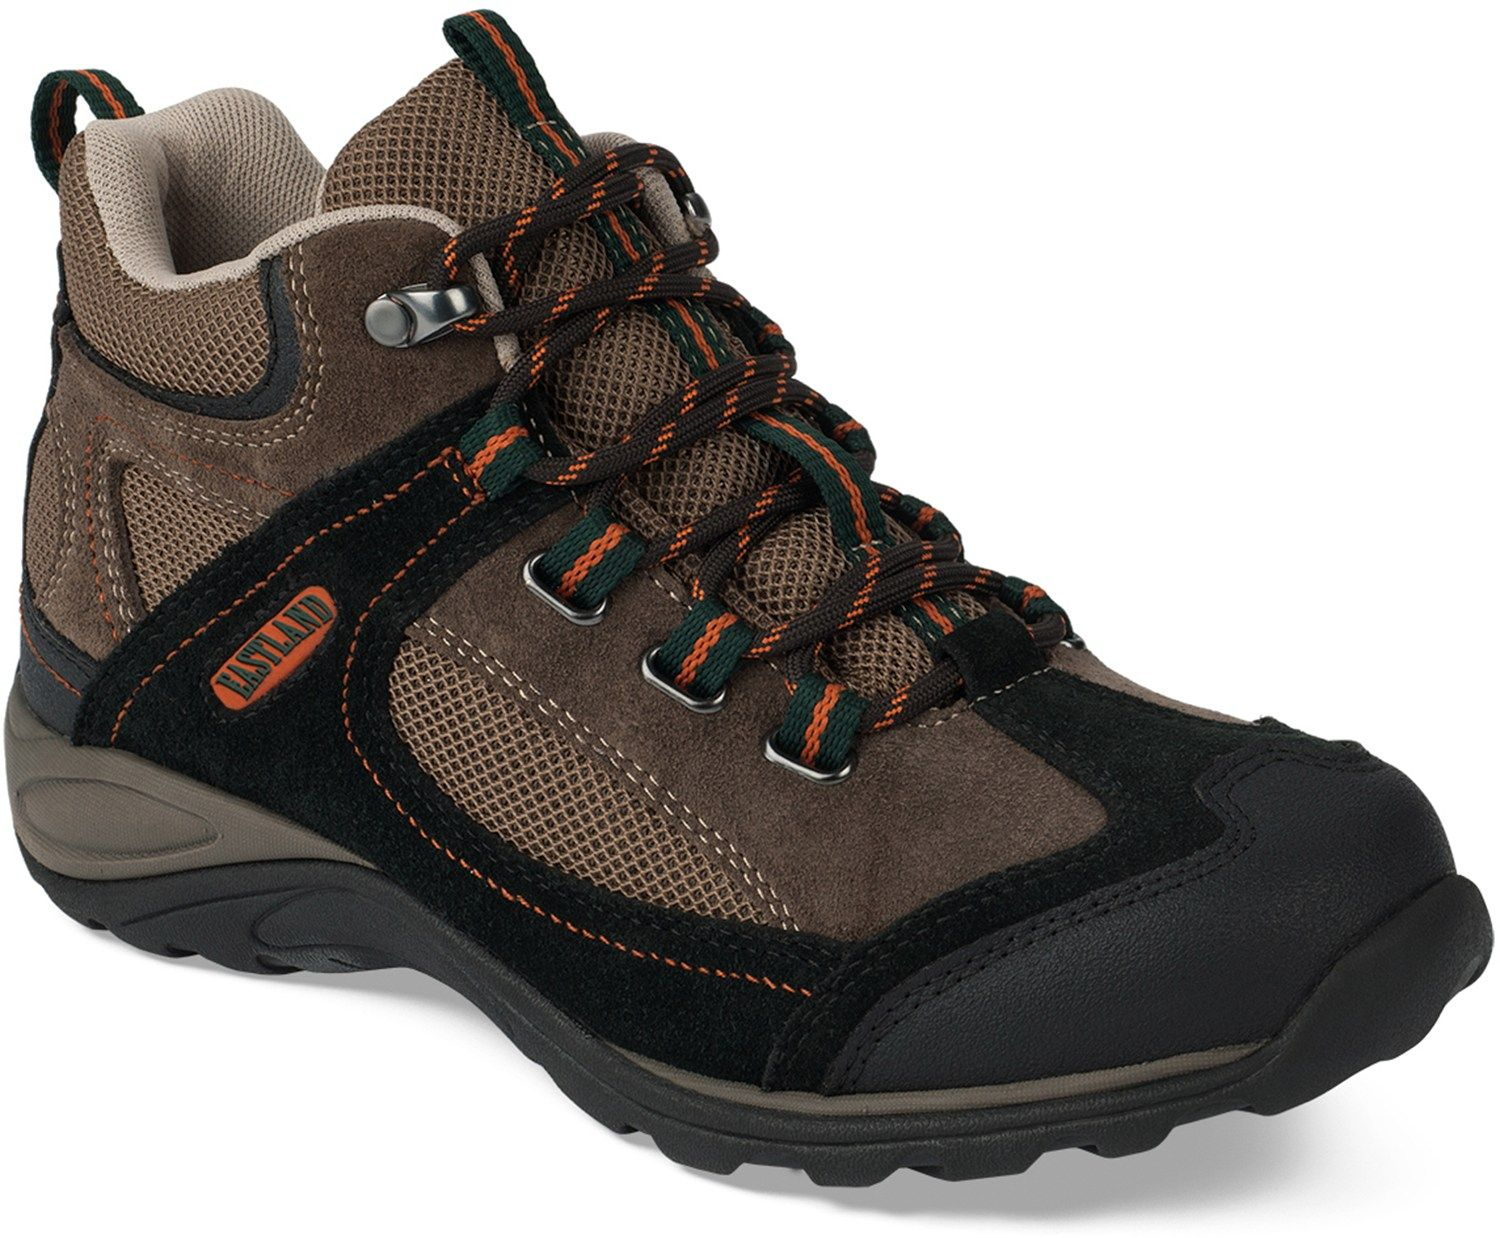 Eastland Tacoma Mid Trail Boots Women S 2013 Closeout Boots Hiking Boots Womens Boots